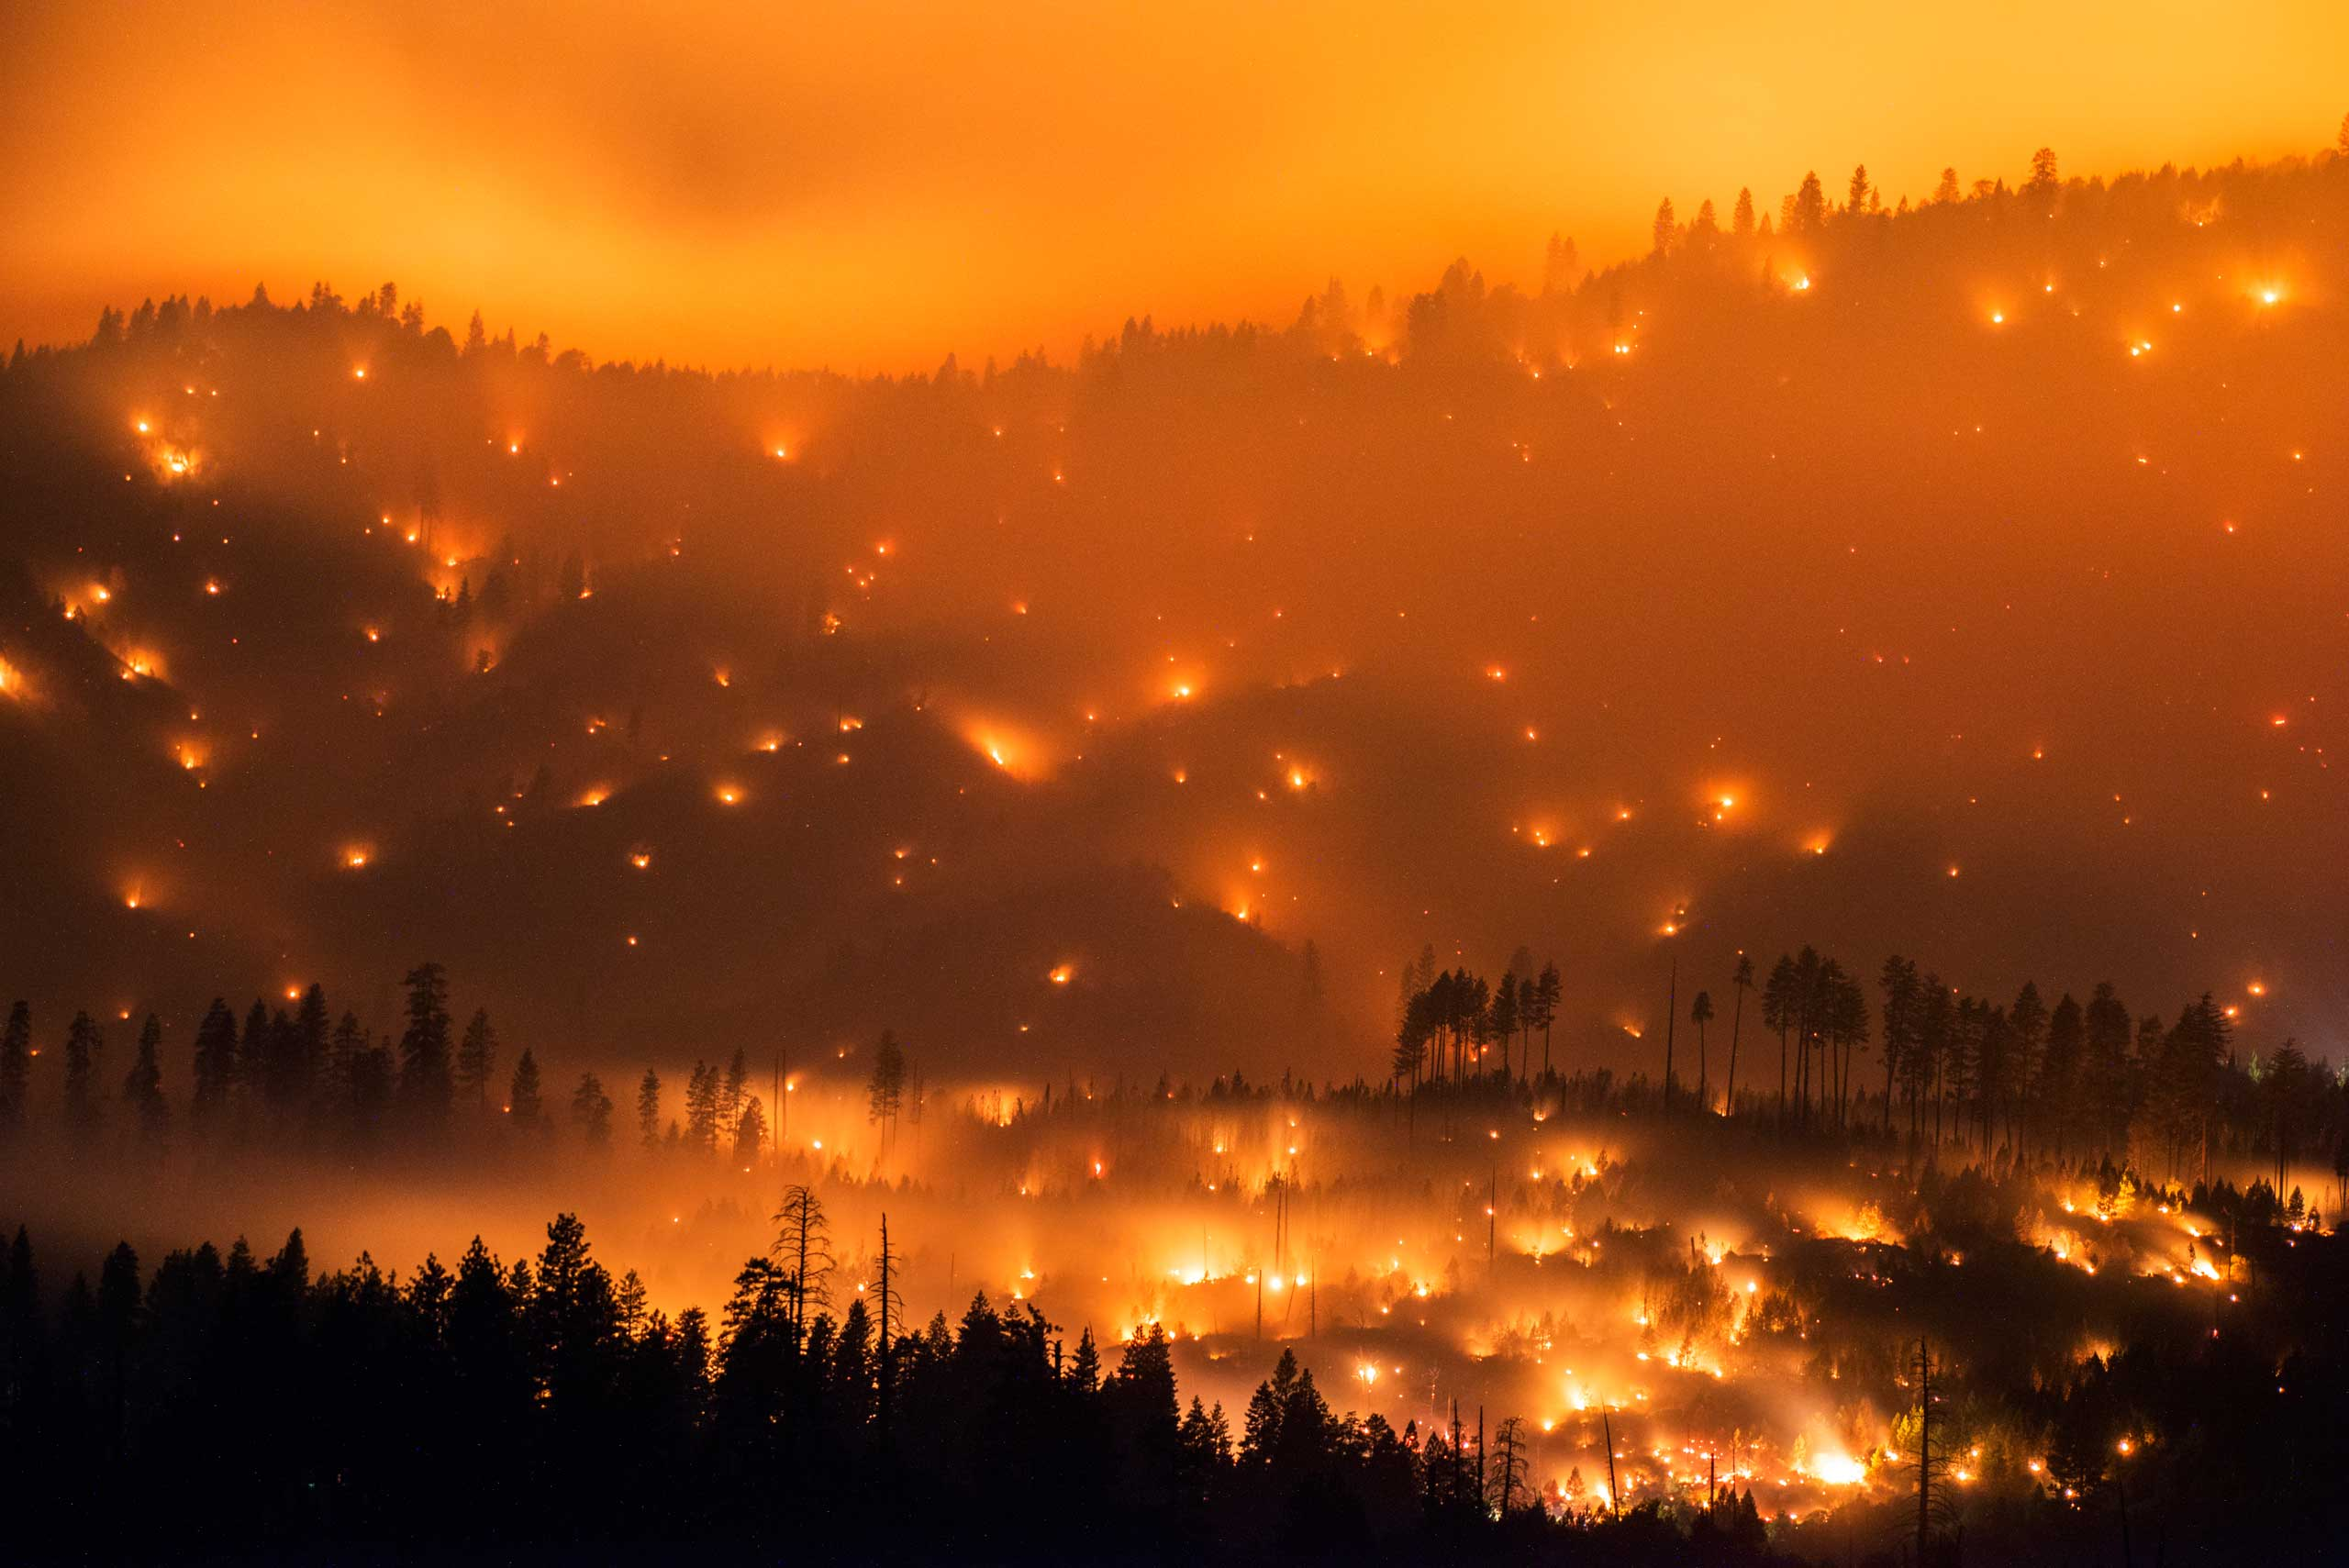 <b>Yosemite Wildfire</b> A long exposure image shows the El Portal Fire burning near Yosemite National Park, Calif. on July 27, 2014.